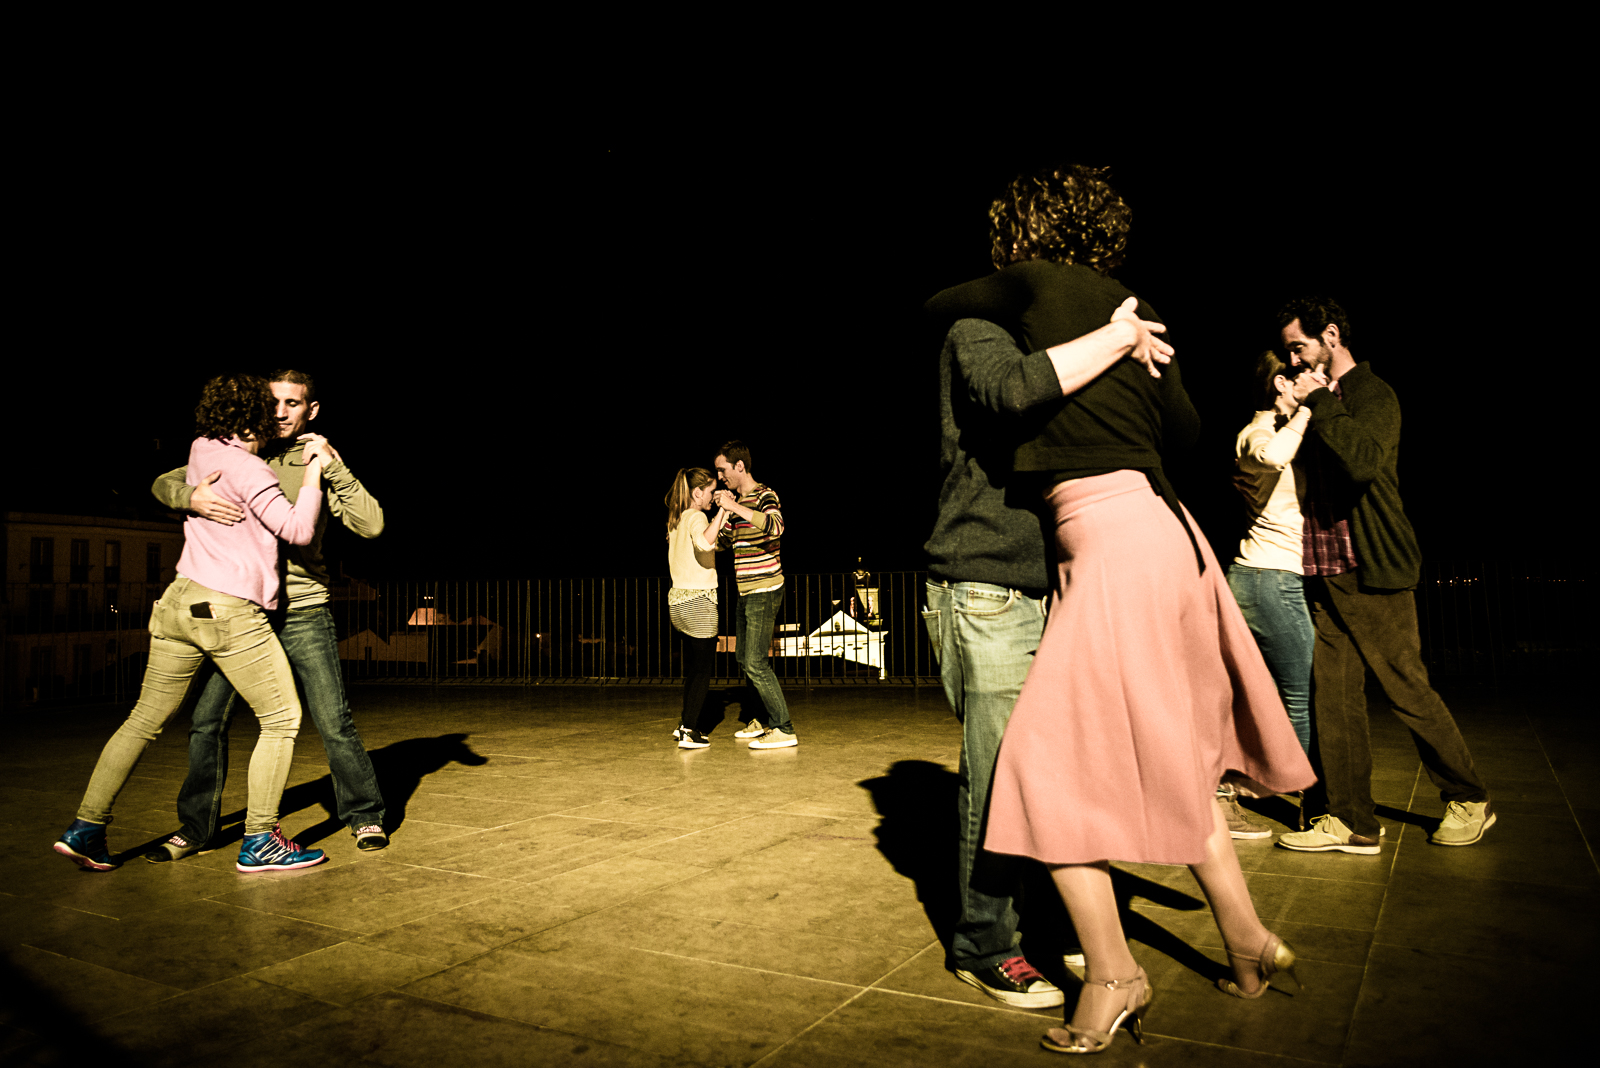 Midnight Dance, Lisbon